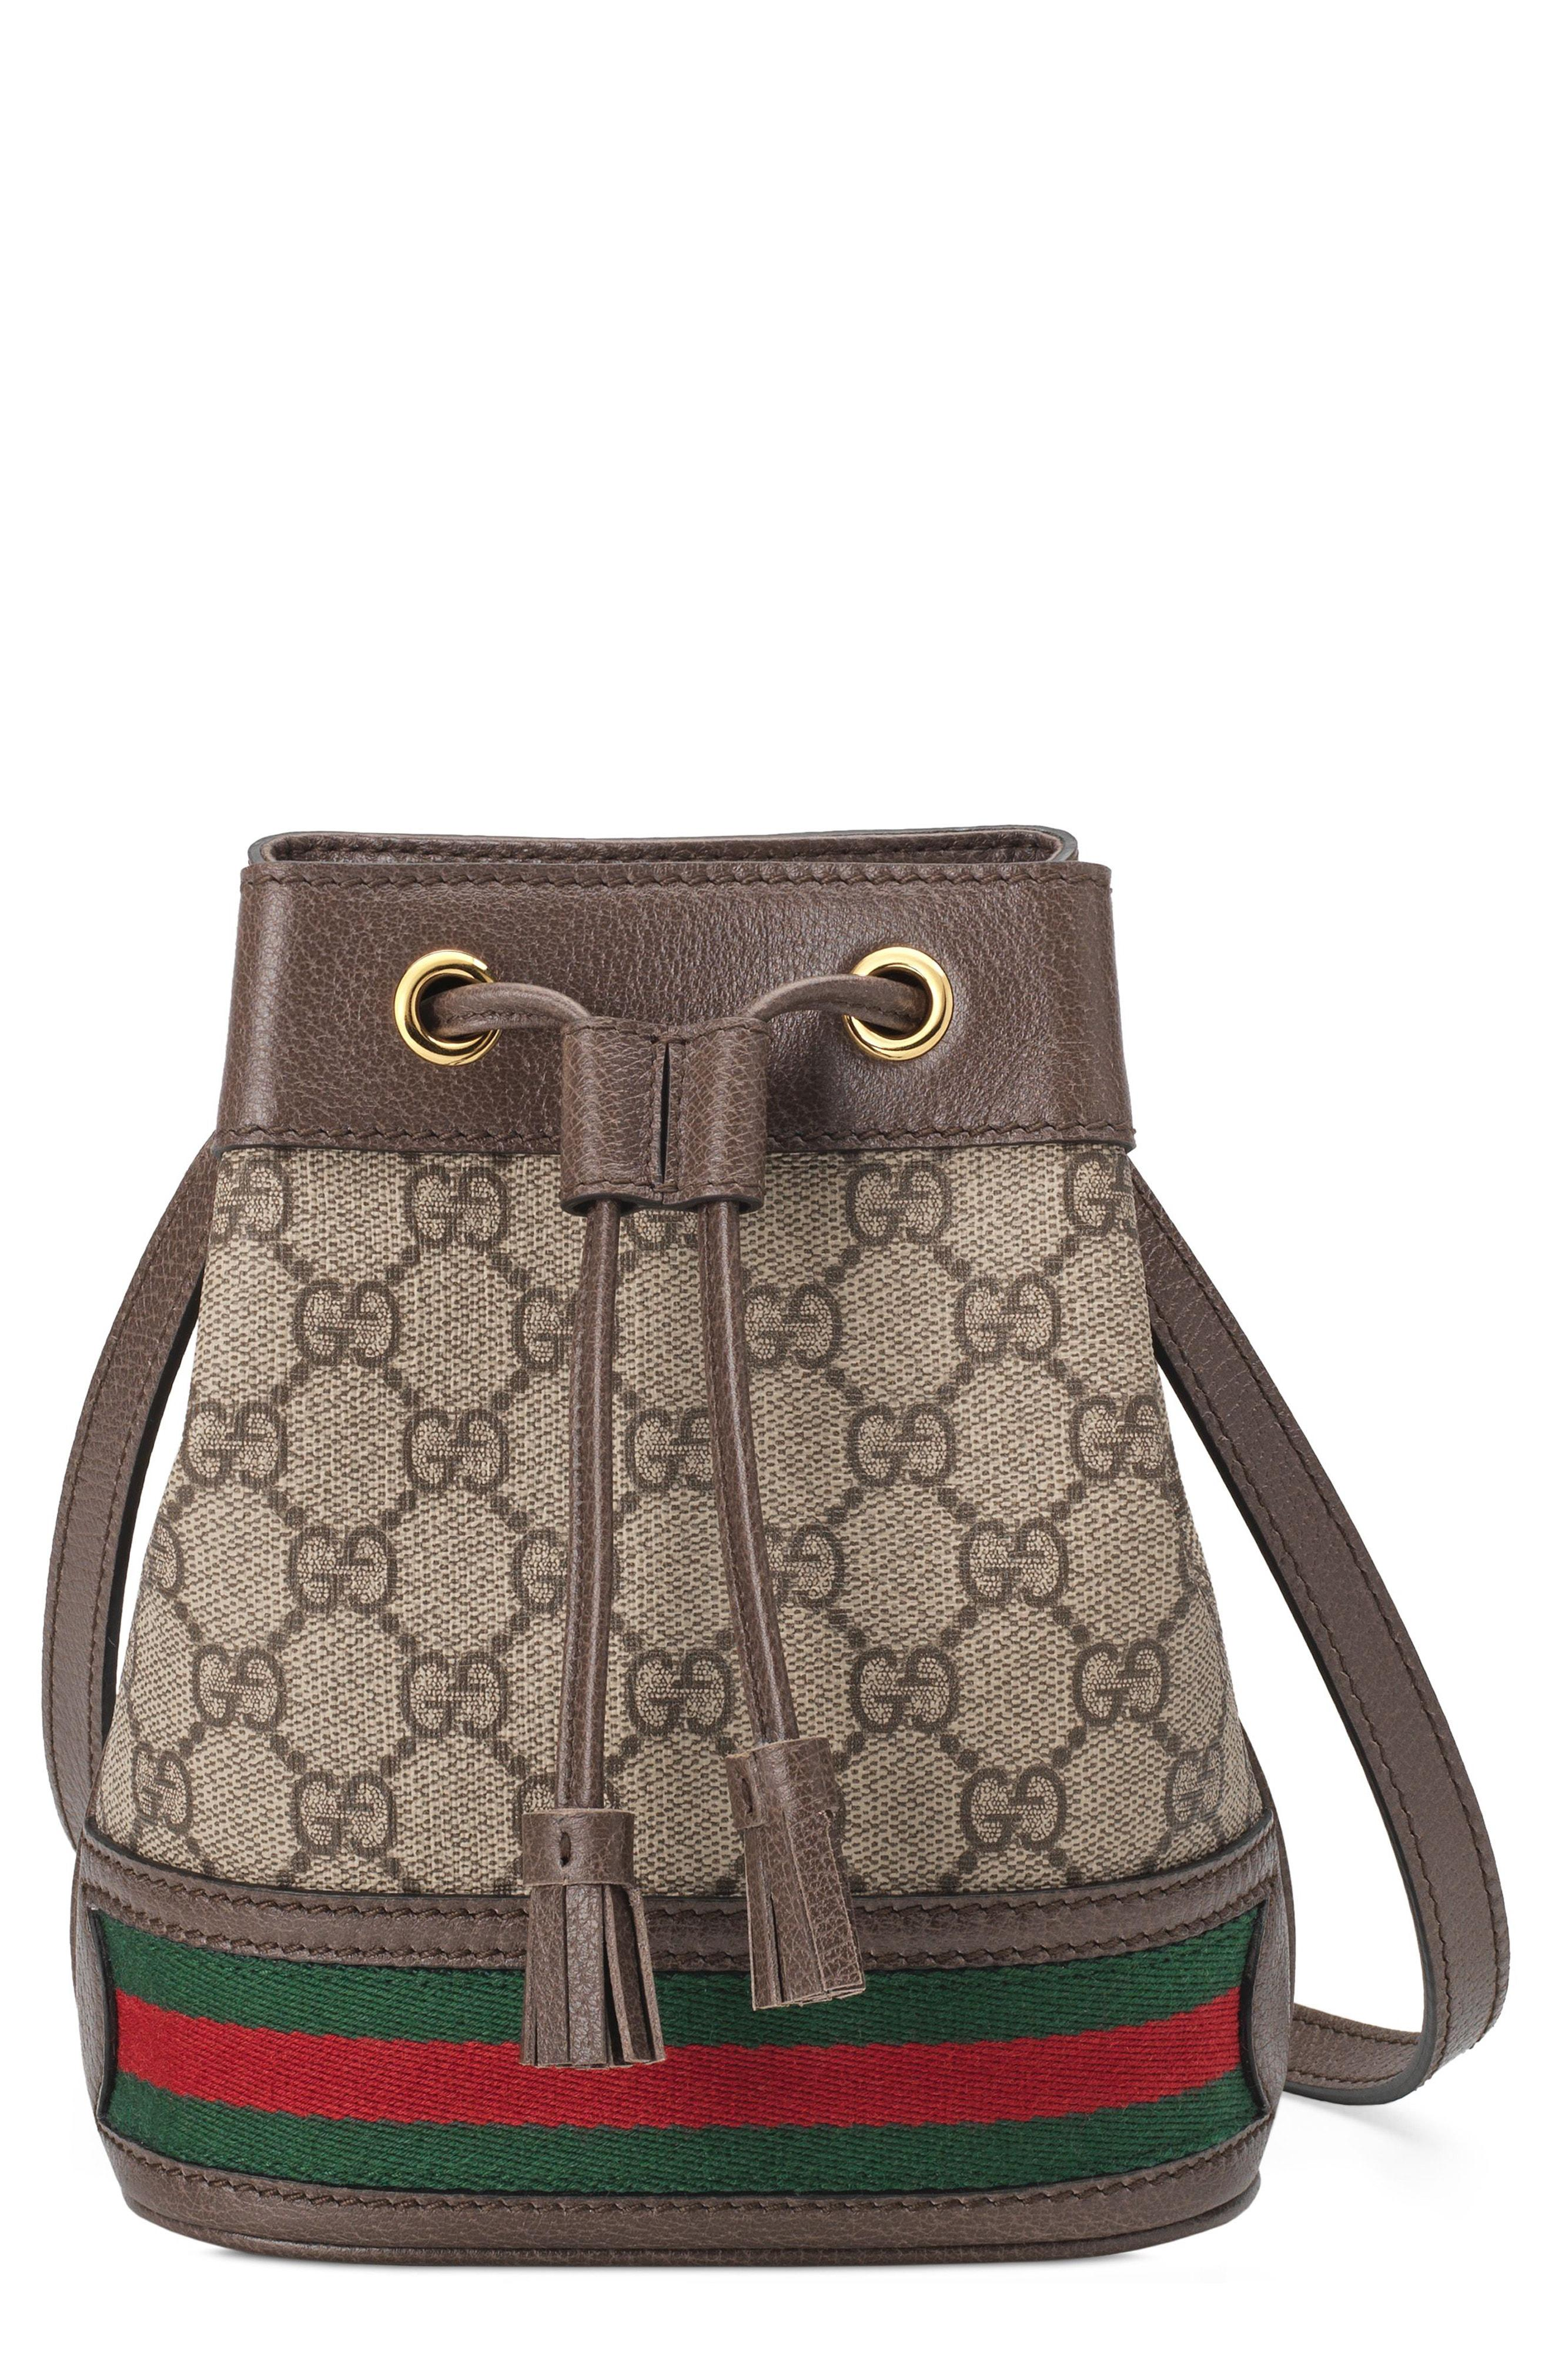 c6c65ce2f969f Gucci Ophidia GG Bucket Bag in Brown - Save 2.2973835354179926% - Lyst